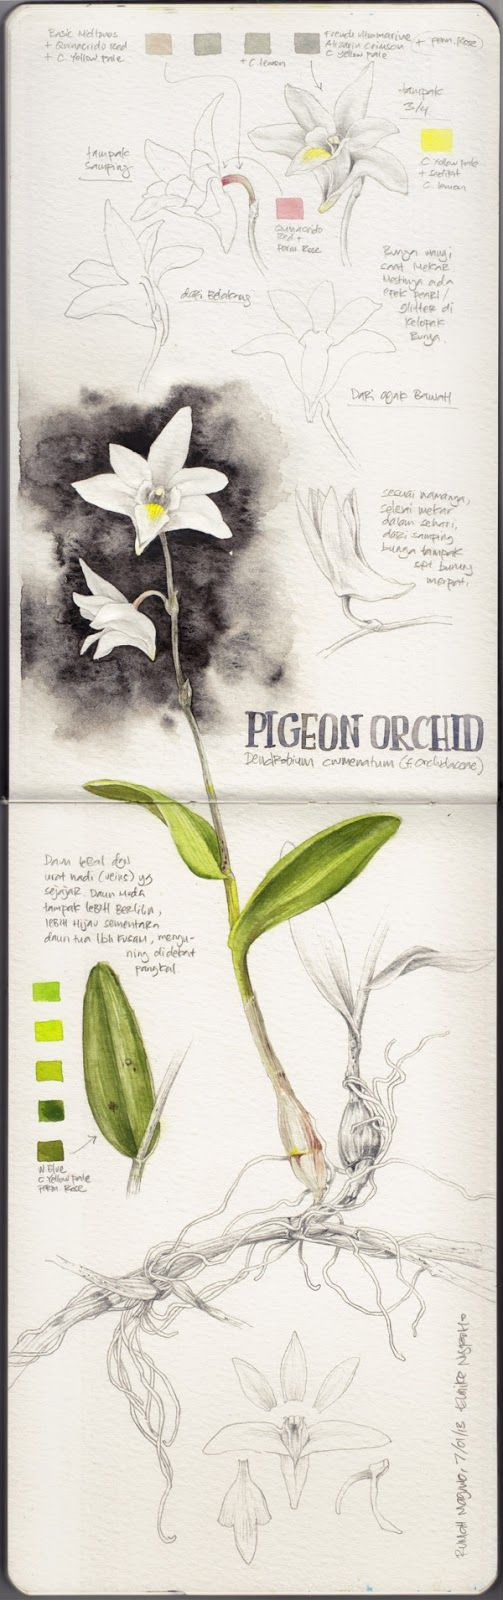 Pigeon Orchid study by illustrator Eunike Nugroho. Nugroho was process blogging the creation of her illustrations, which means her blog contains lots of helpful technical information.